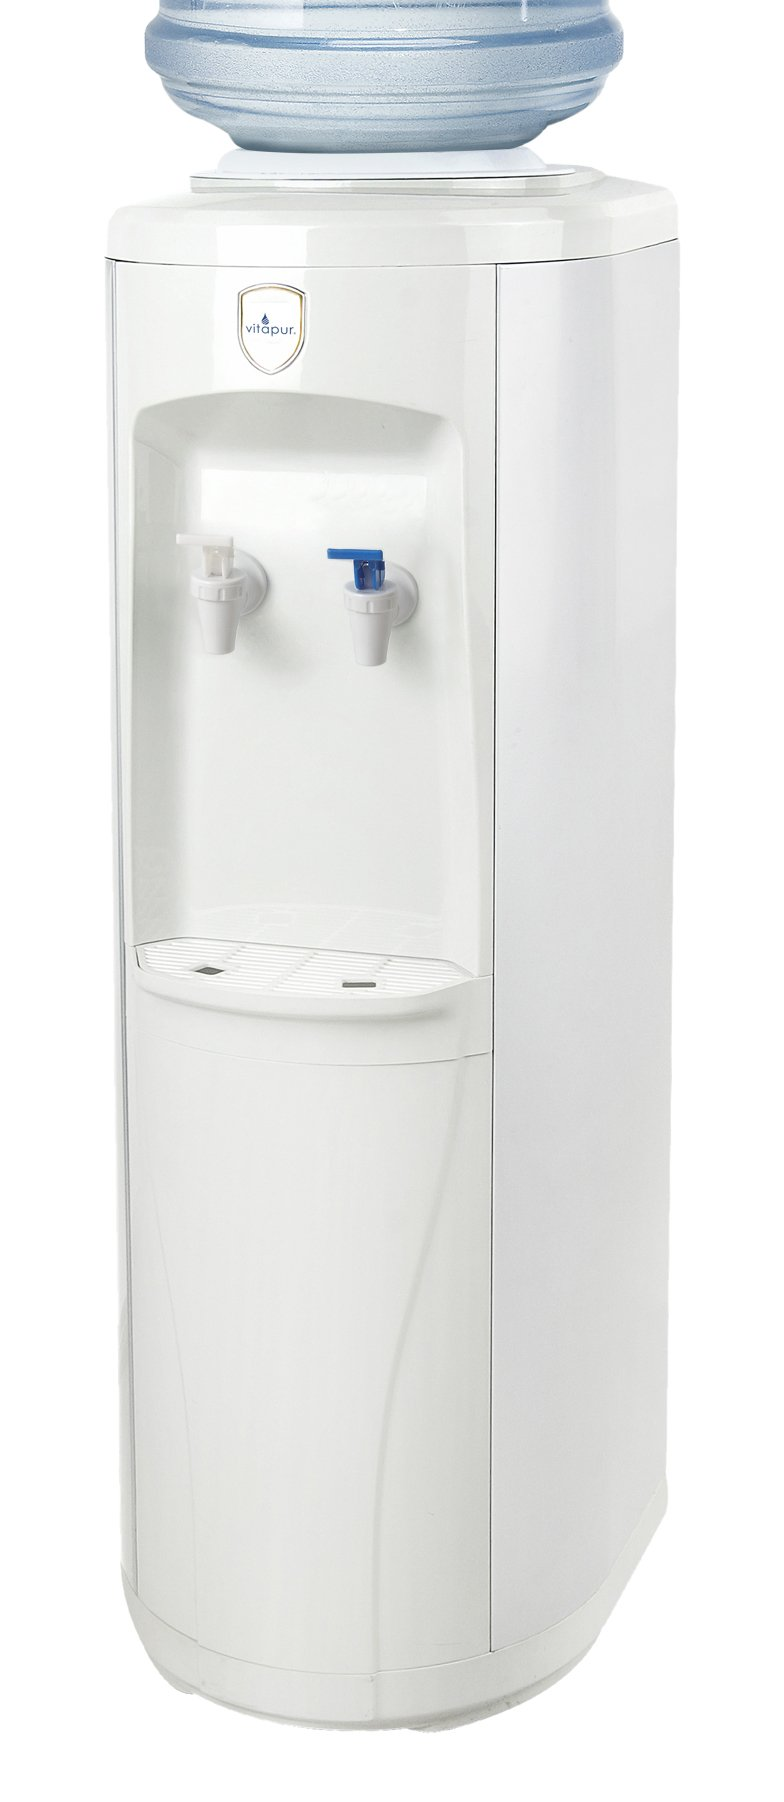 Vitapur VWD2236W Top Load Floor Standing Room Cold Standard Taps, White water dispenser, one size, by Vitapur